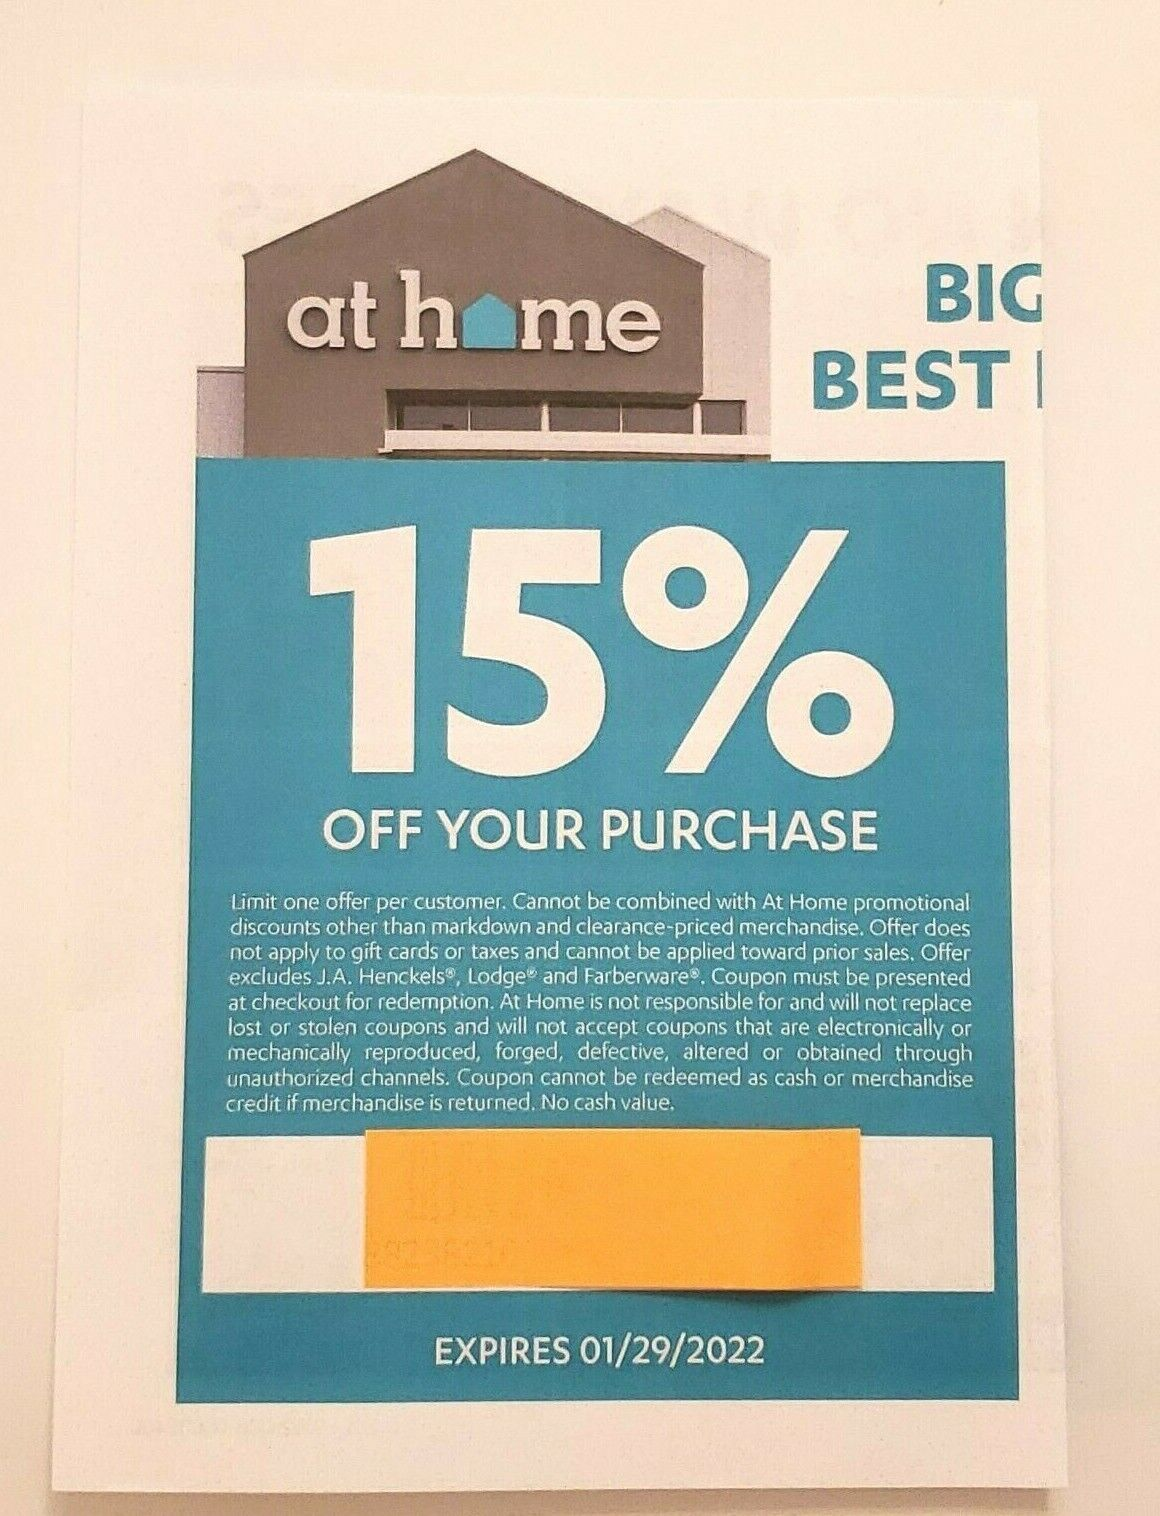 AT HOME 15 Off Coupon In-Store Only Expires 1/29/2022 - $14.99